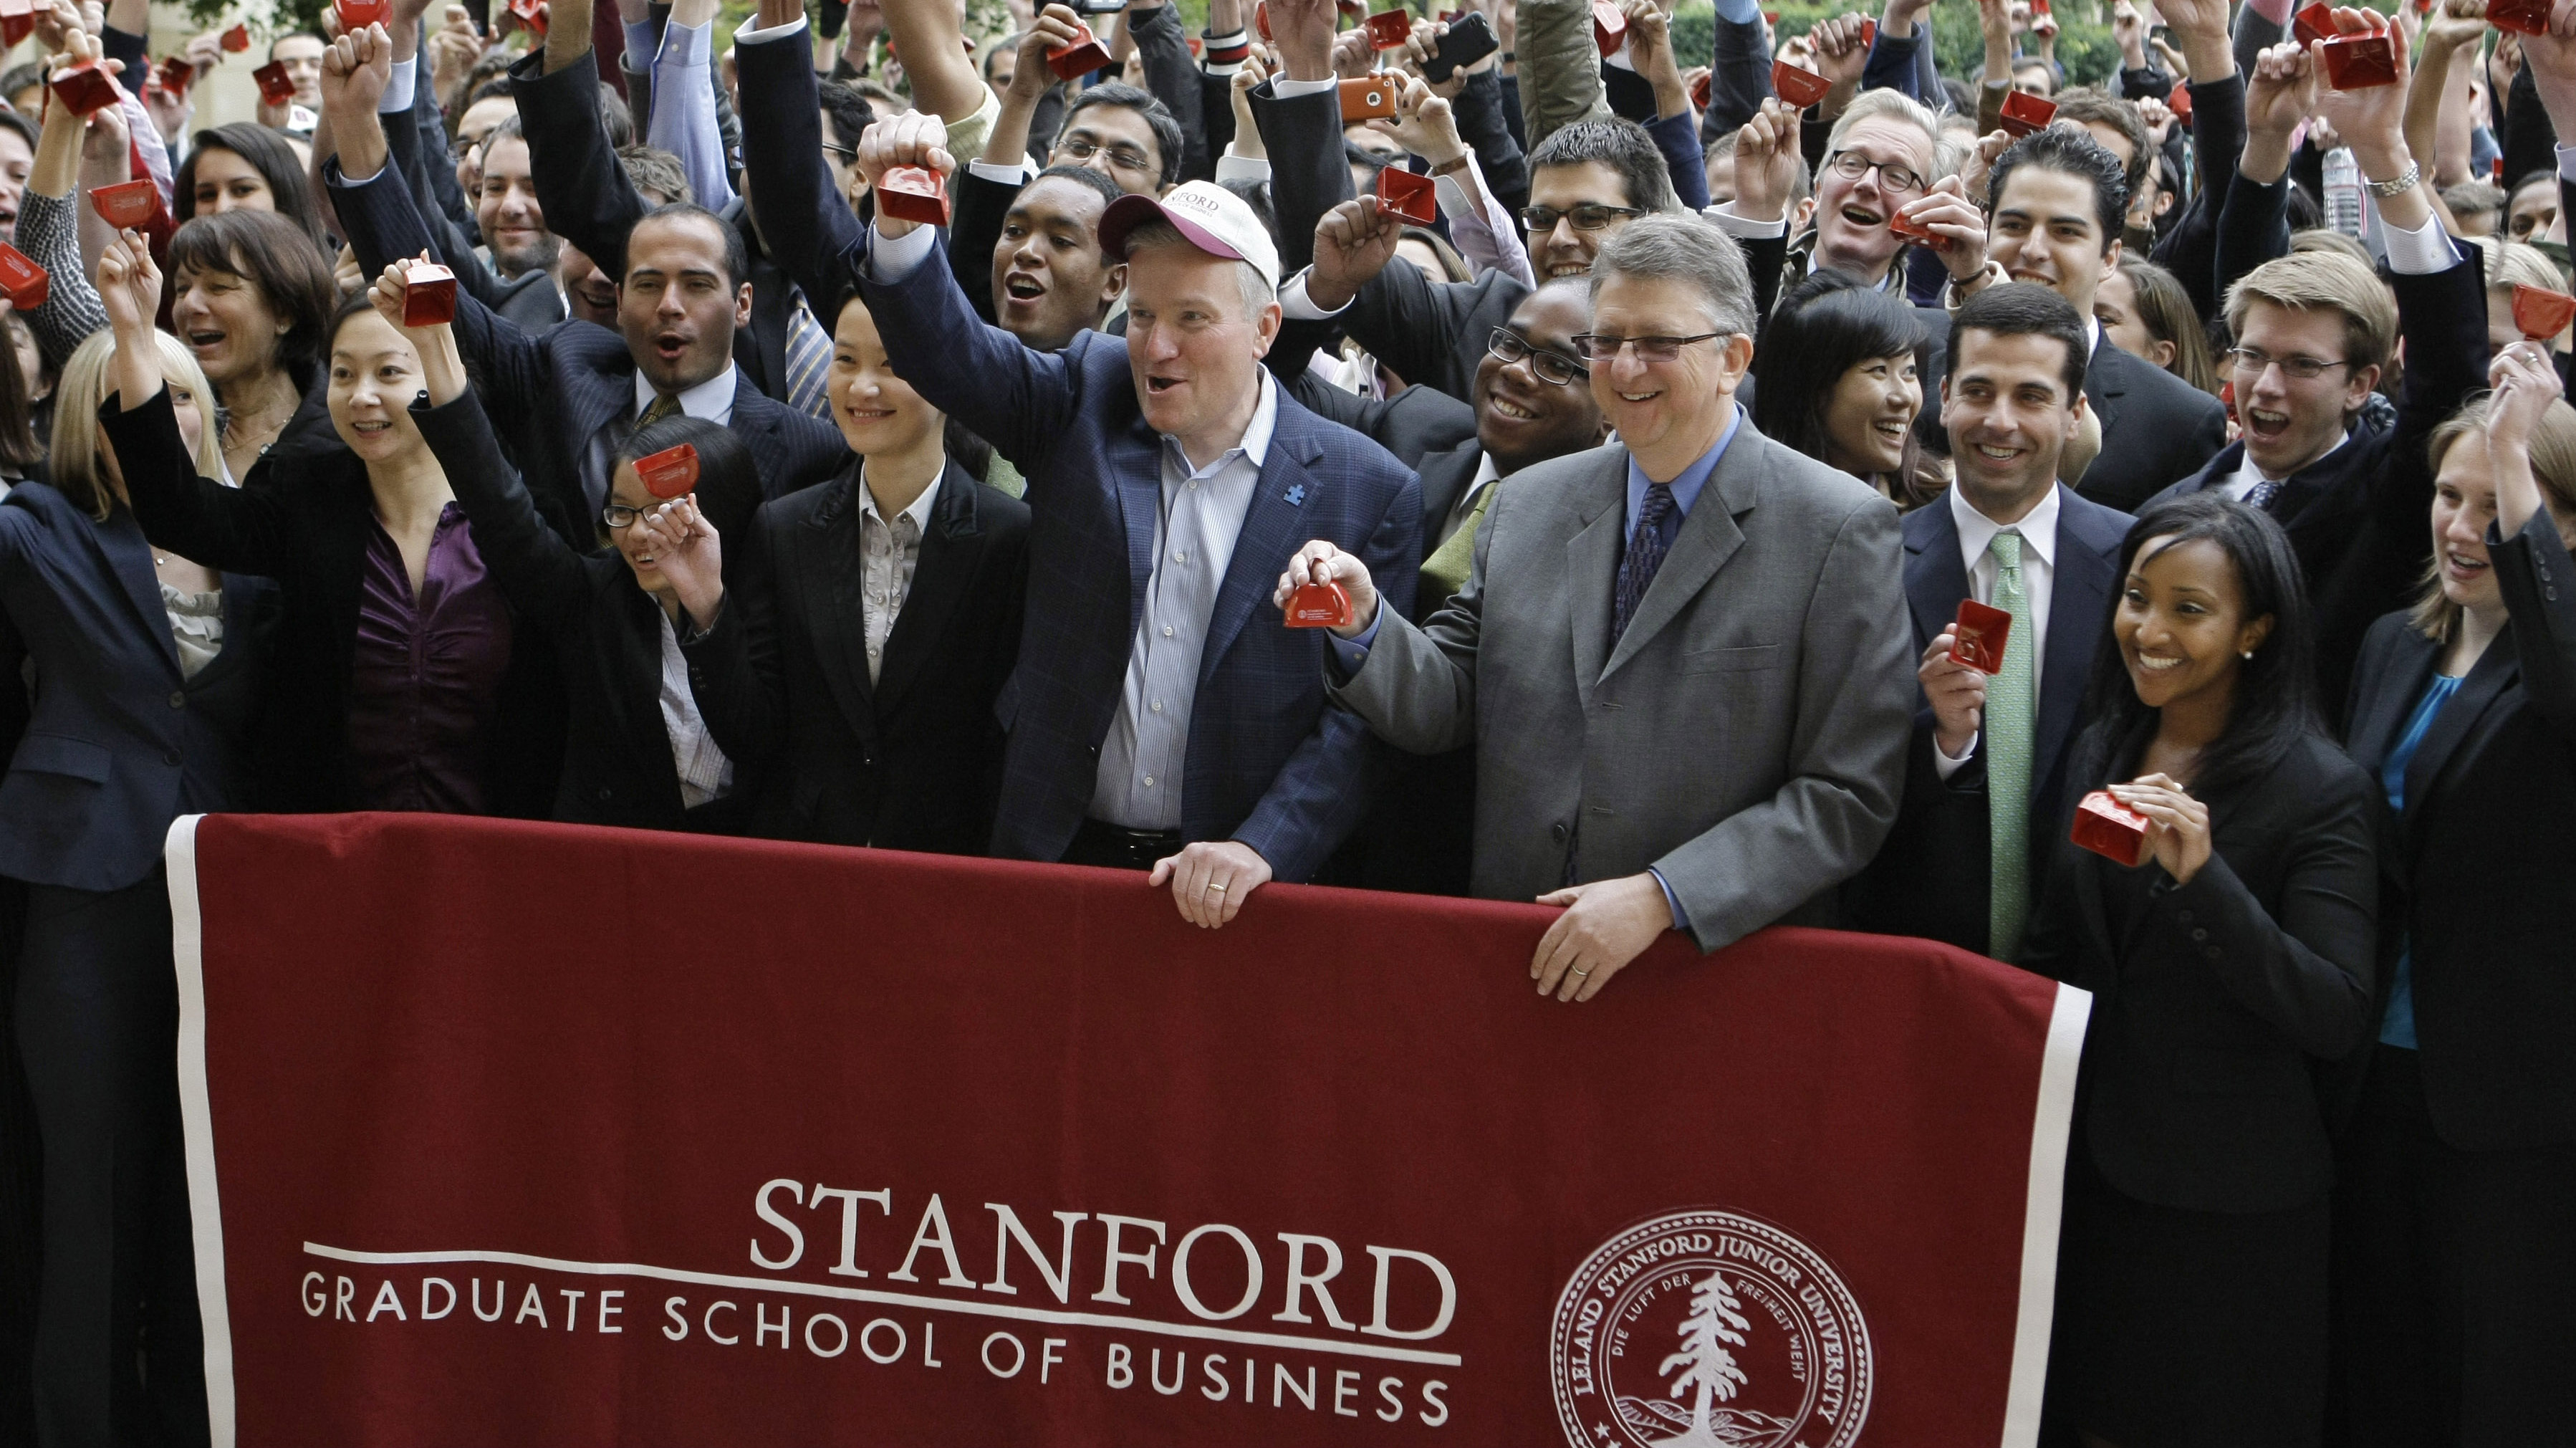 New York Stock Exchange CEO Duncan Niederauer, with hat, and Garth Saloner, Dean of the Stanford Graduate School of Business, to his right, ring the closing NYSE bell, via video teleconference, with hundreds of other Stanford MBA students on the Stanford University campus in Palo Alto, Calif., Thursday, Dec. 2, 2010.